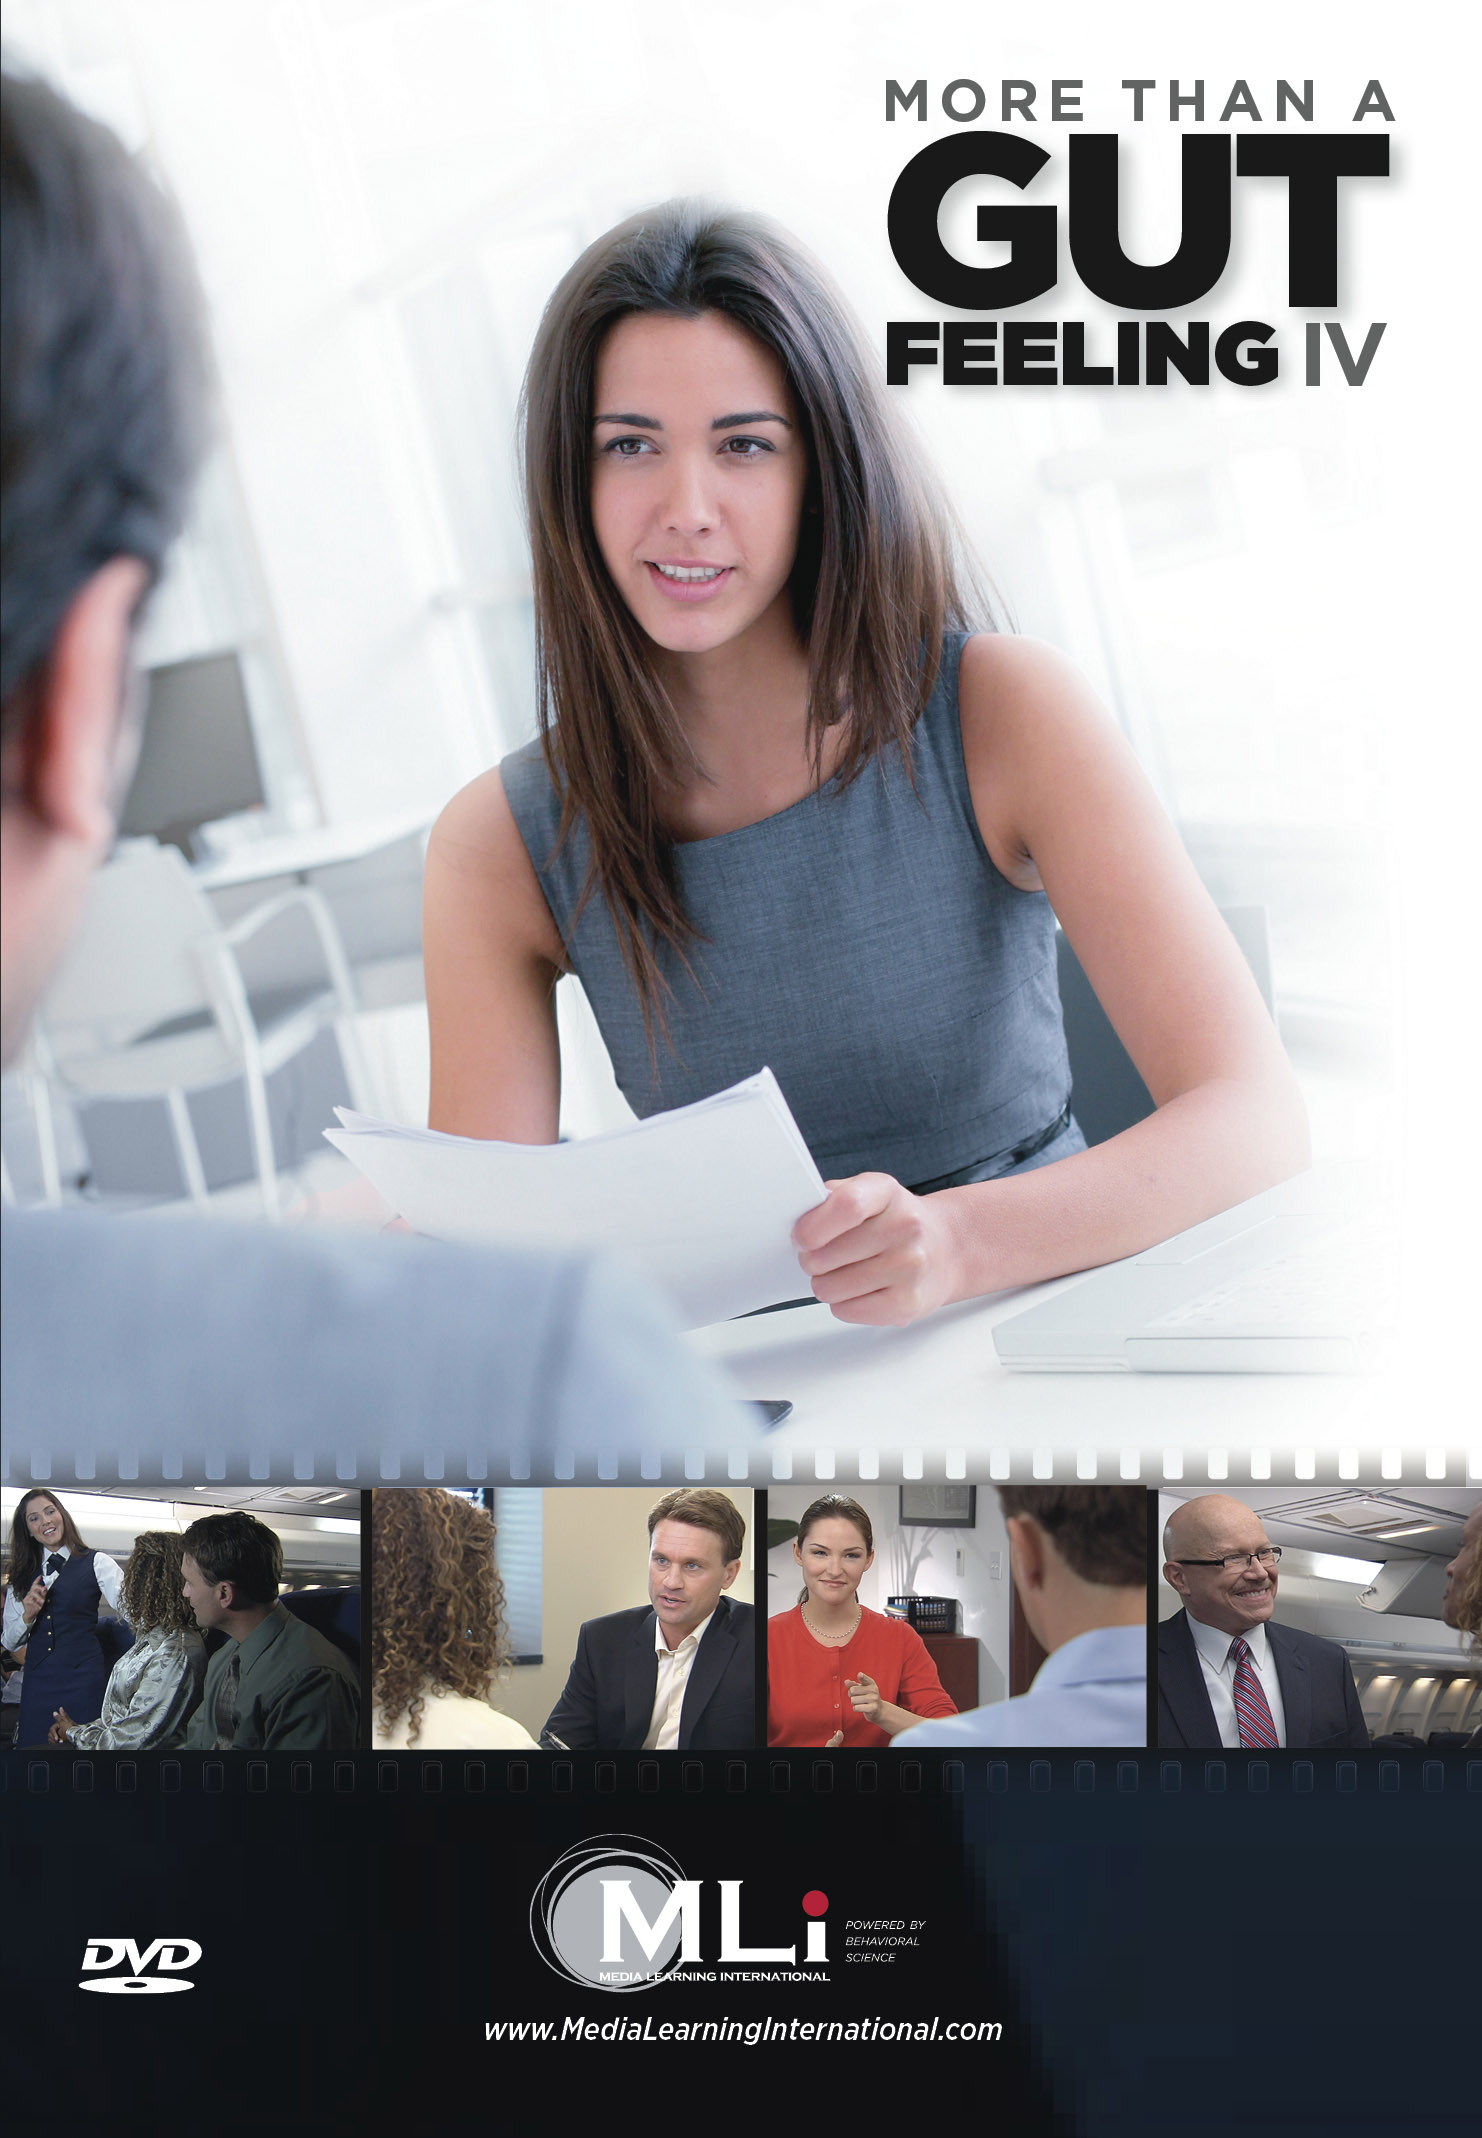 More Than a Gut Feeling IV (DVD)